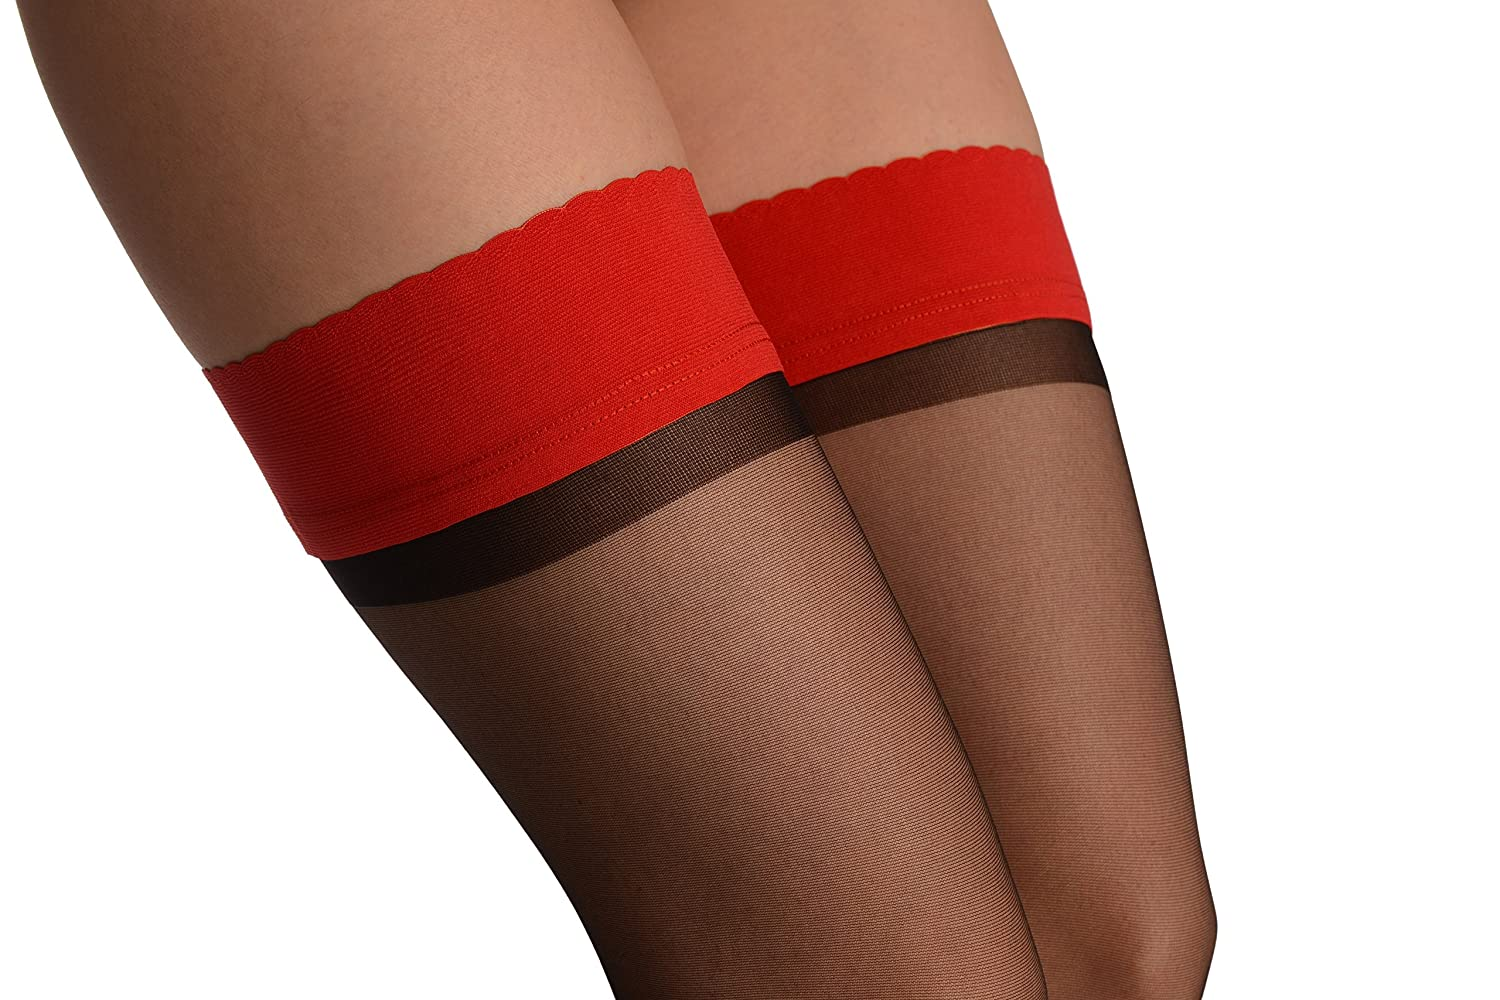 Black With Red Rounded Petals Top Silicon Garter - Red Designer Hold Ups